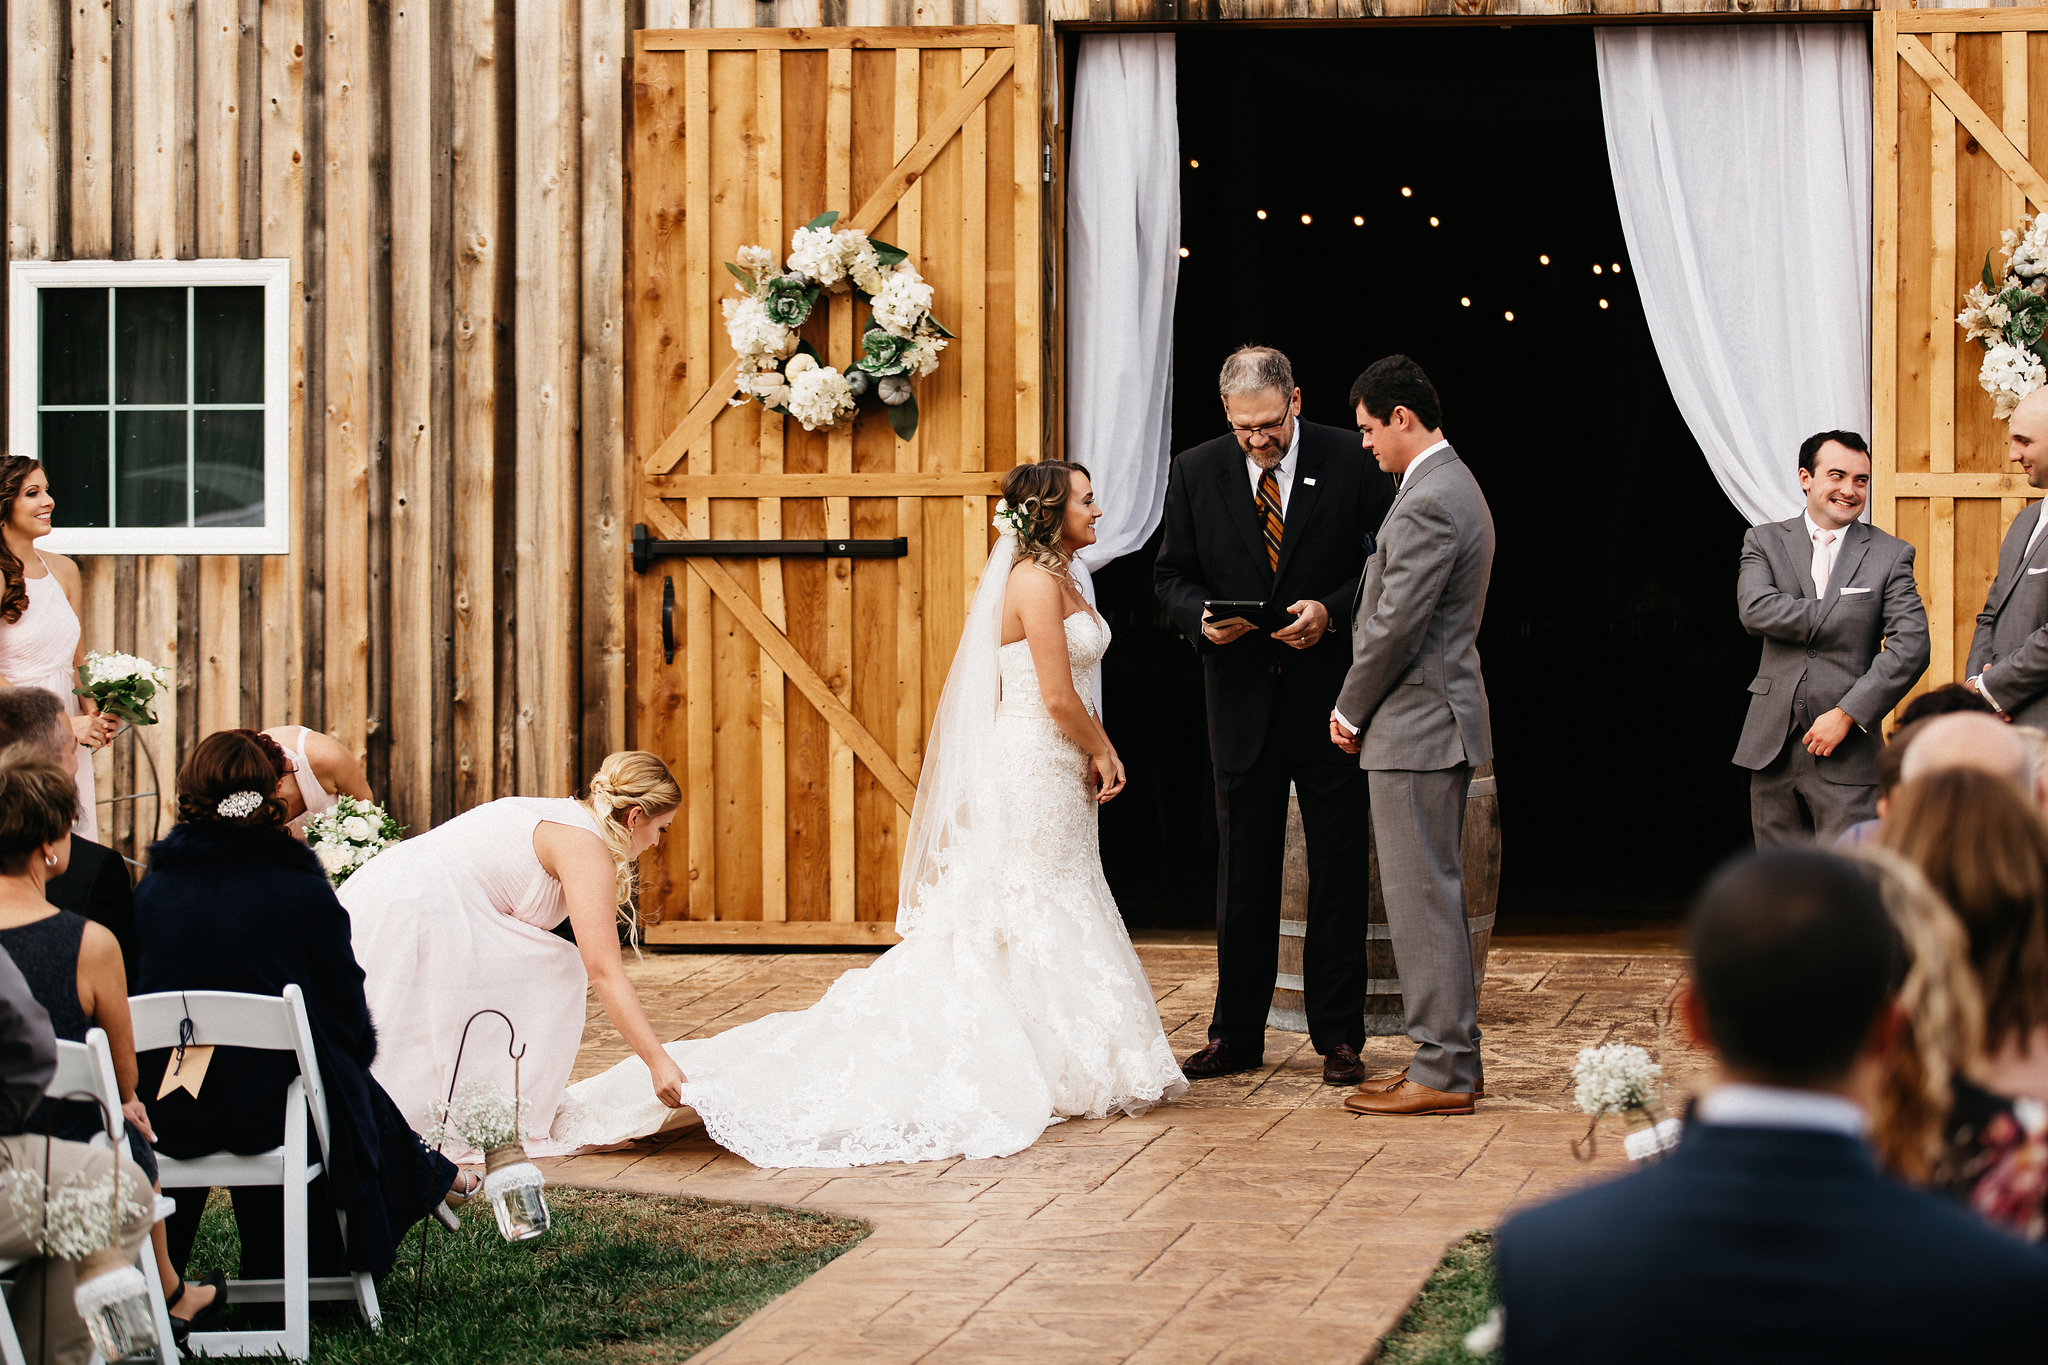 Ashley&NathanMarried2017-11-10at19.26.48PM46.jpg